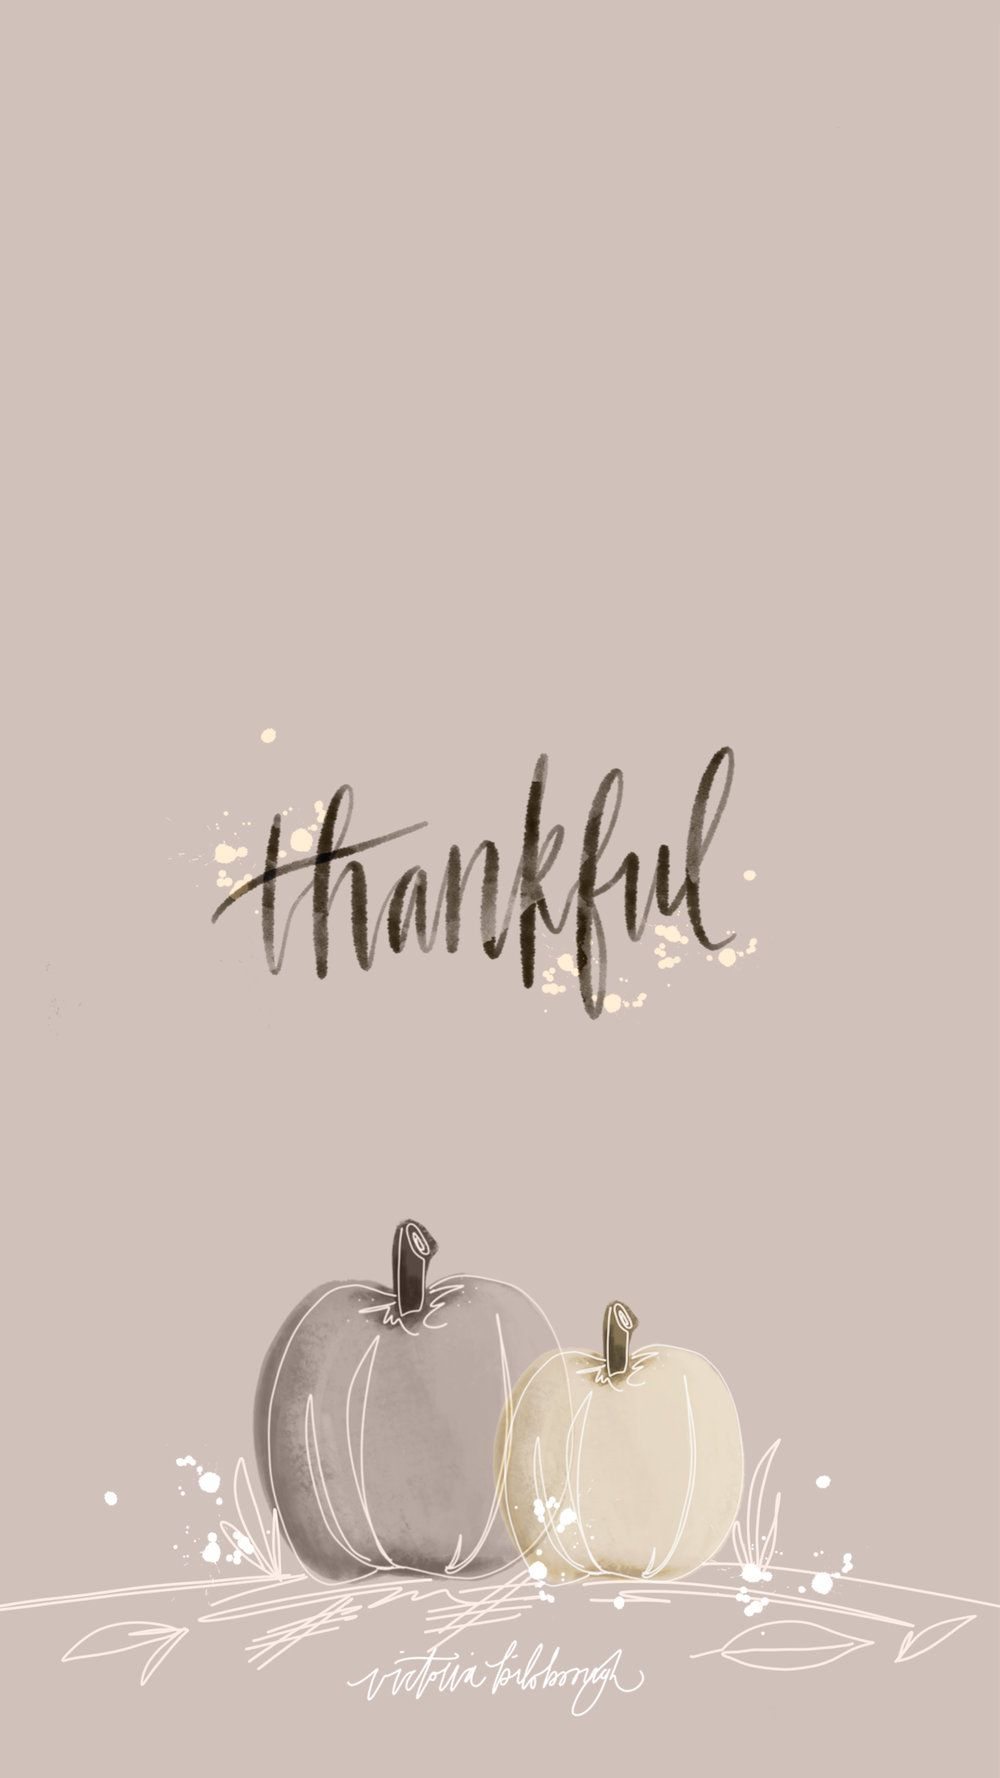 Free Thanksgiving Wallpapers Iphone wallpaper fall